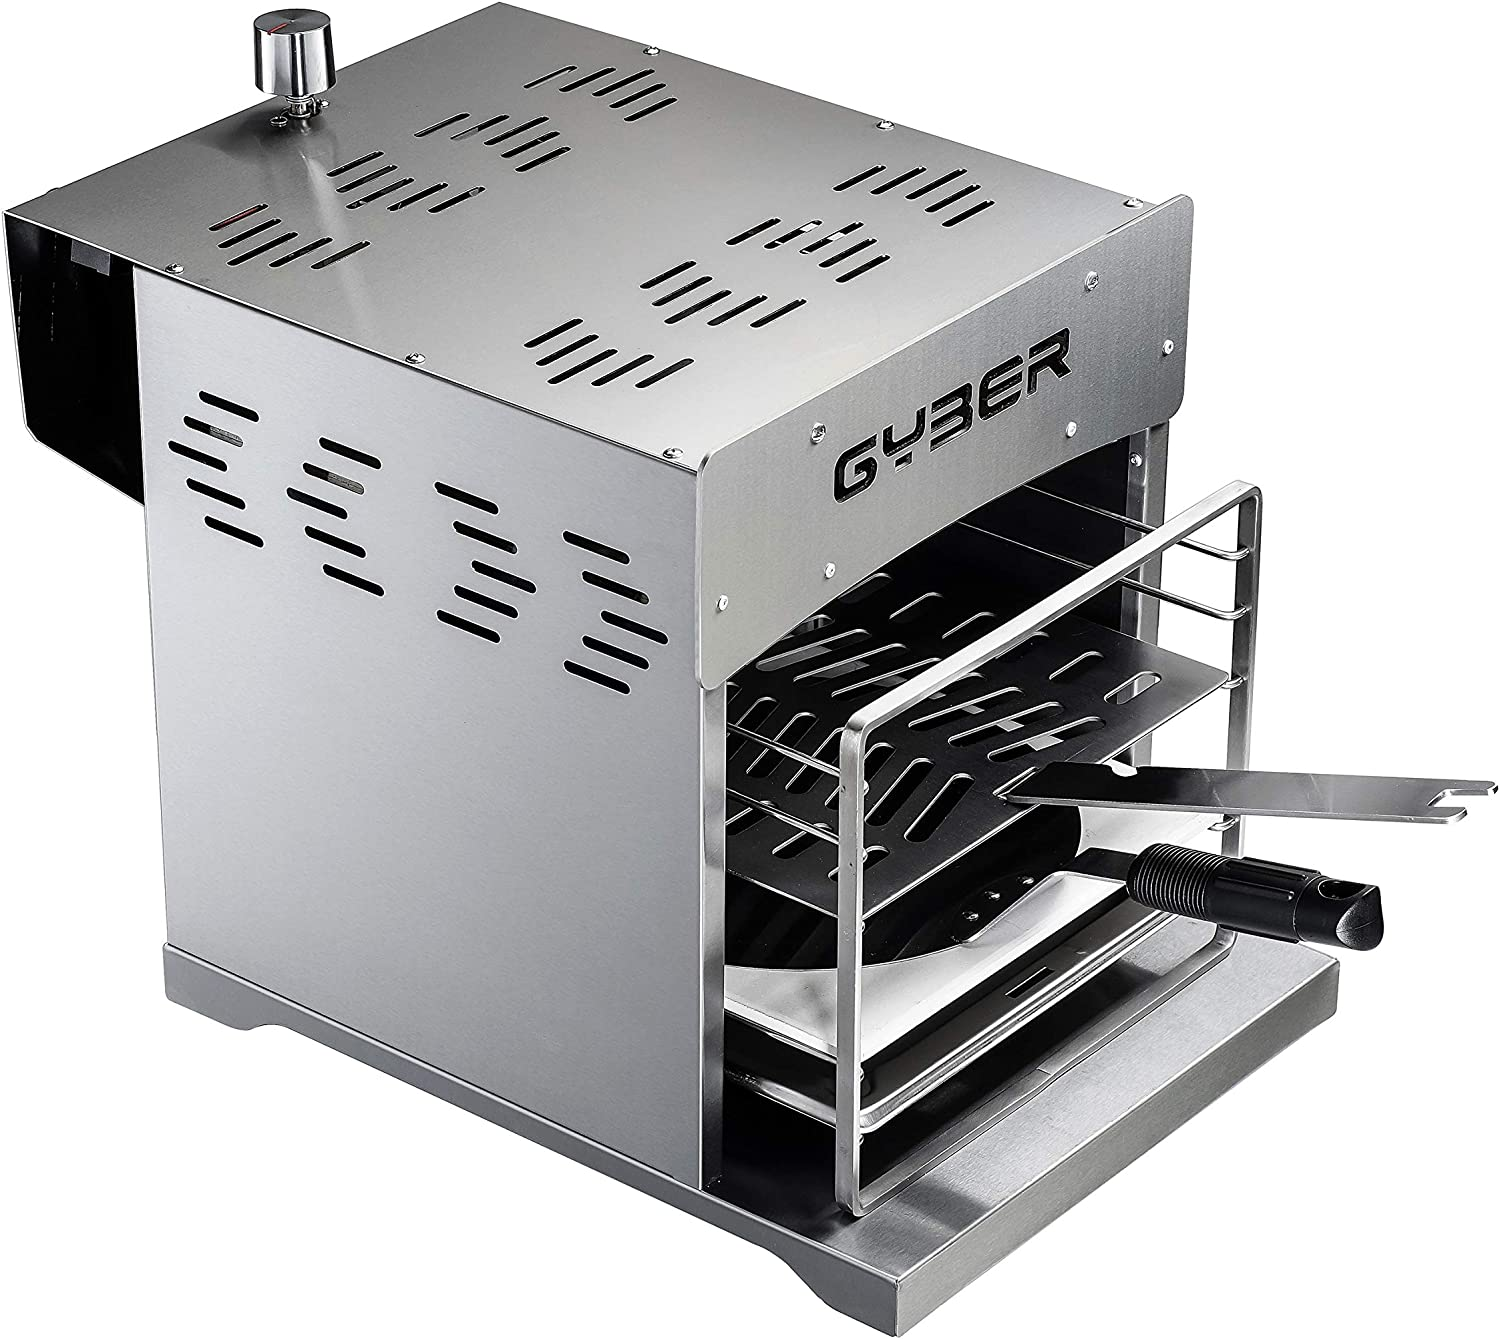 Dutton 122 in 12 Portable Outdoor Gas Grill Steak + Pizza Propane Infrared  Grill   Efficient Heating Element